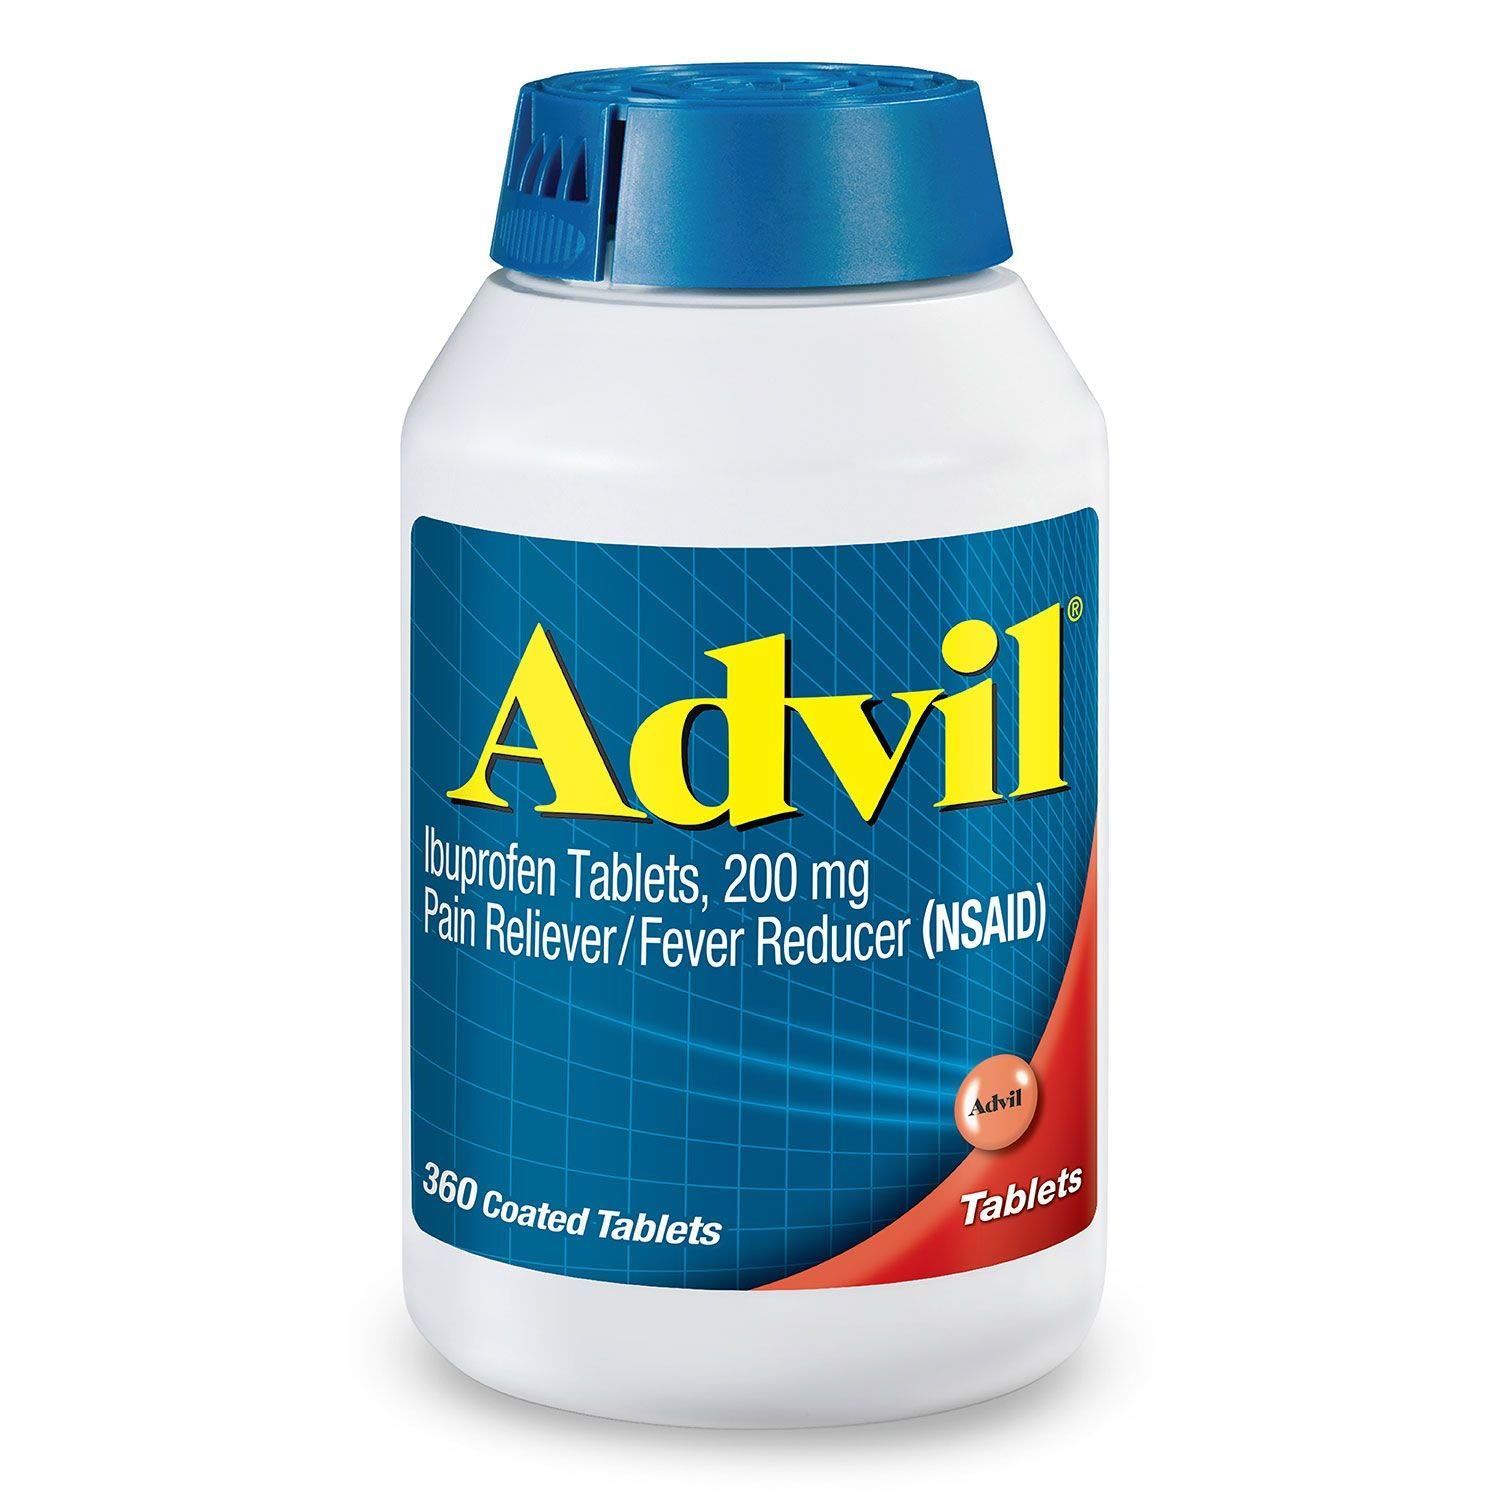 Advil Pain Reliever/Fever Reducer, 200mg Ibuprofen pos3re Pack of 1 Pack (360 ct Each) by Altoids